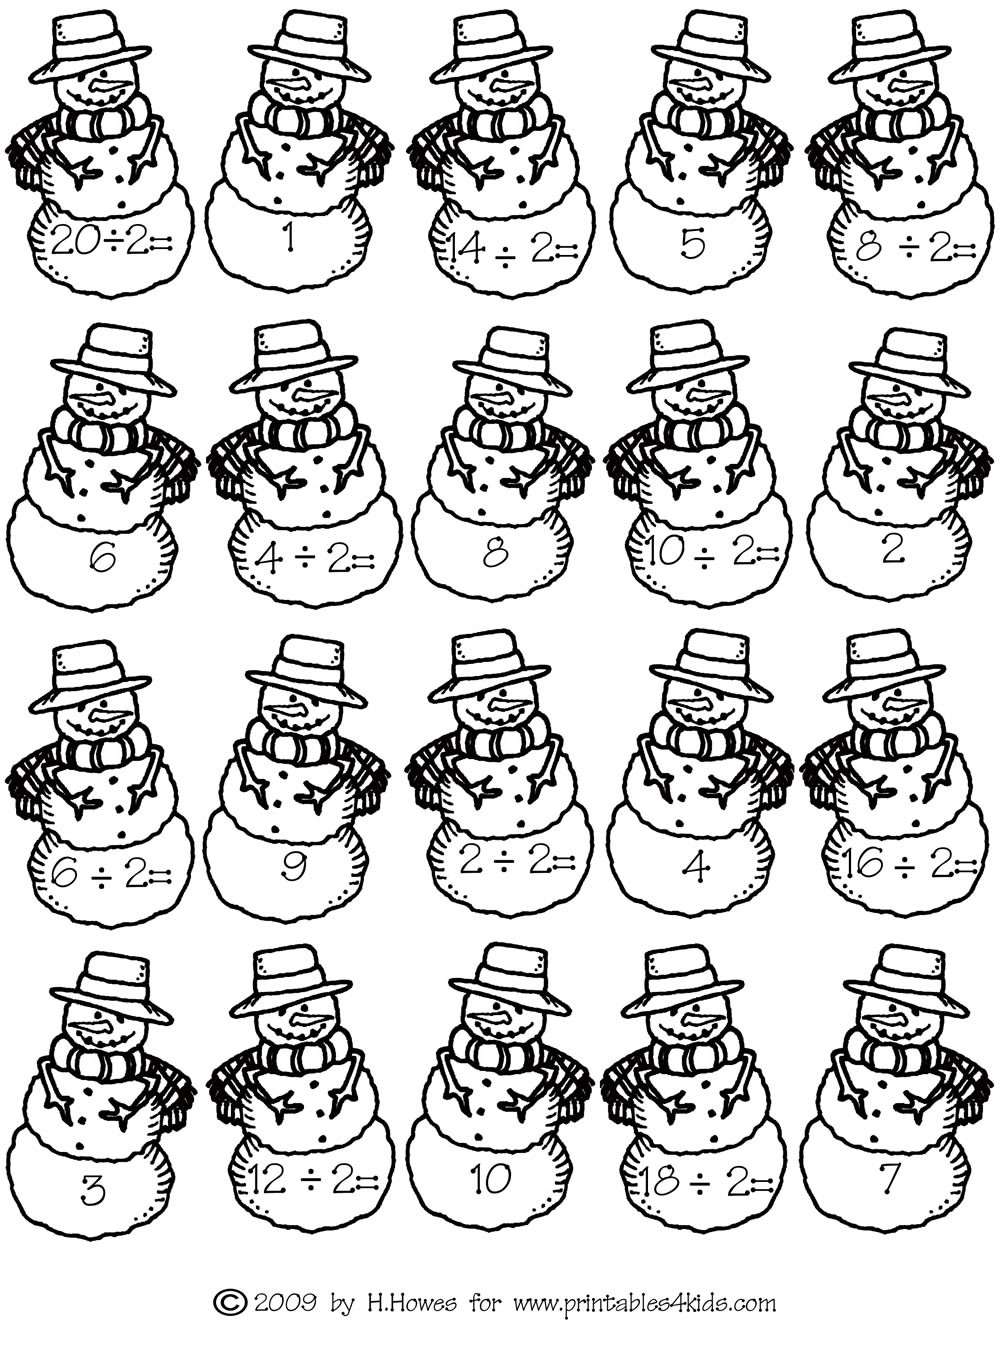 Snowman Math Worksheets Math Facts Division Twos Snowman Printables for Kids